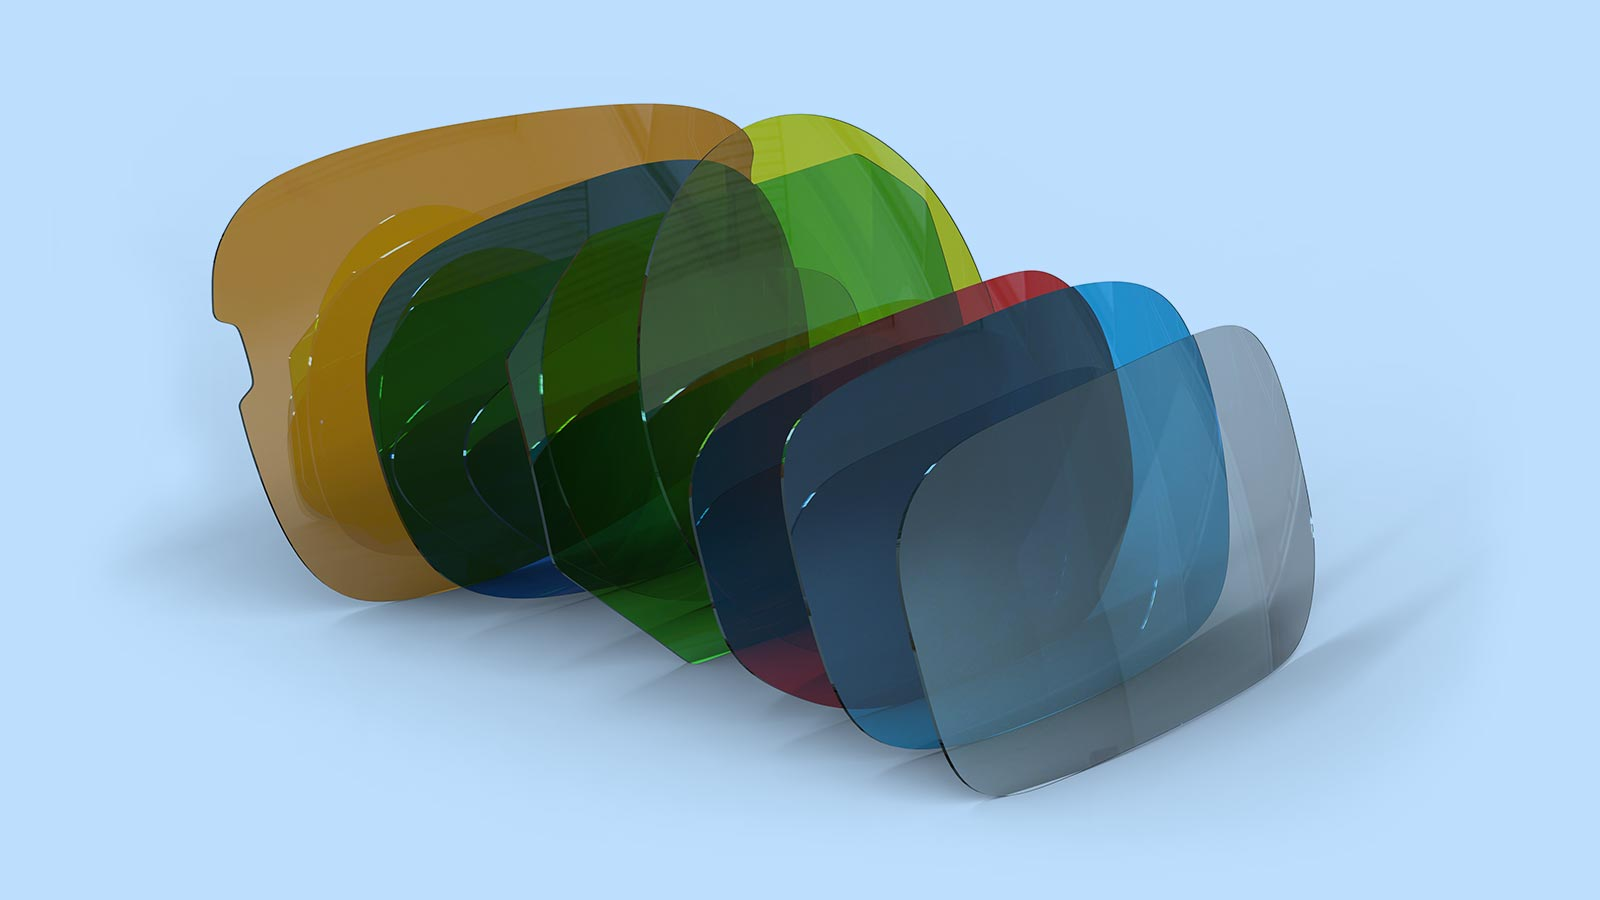 What type of glasses lens material your specs carry?